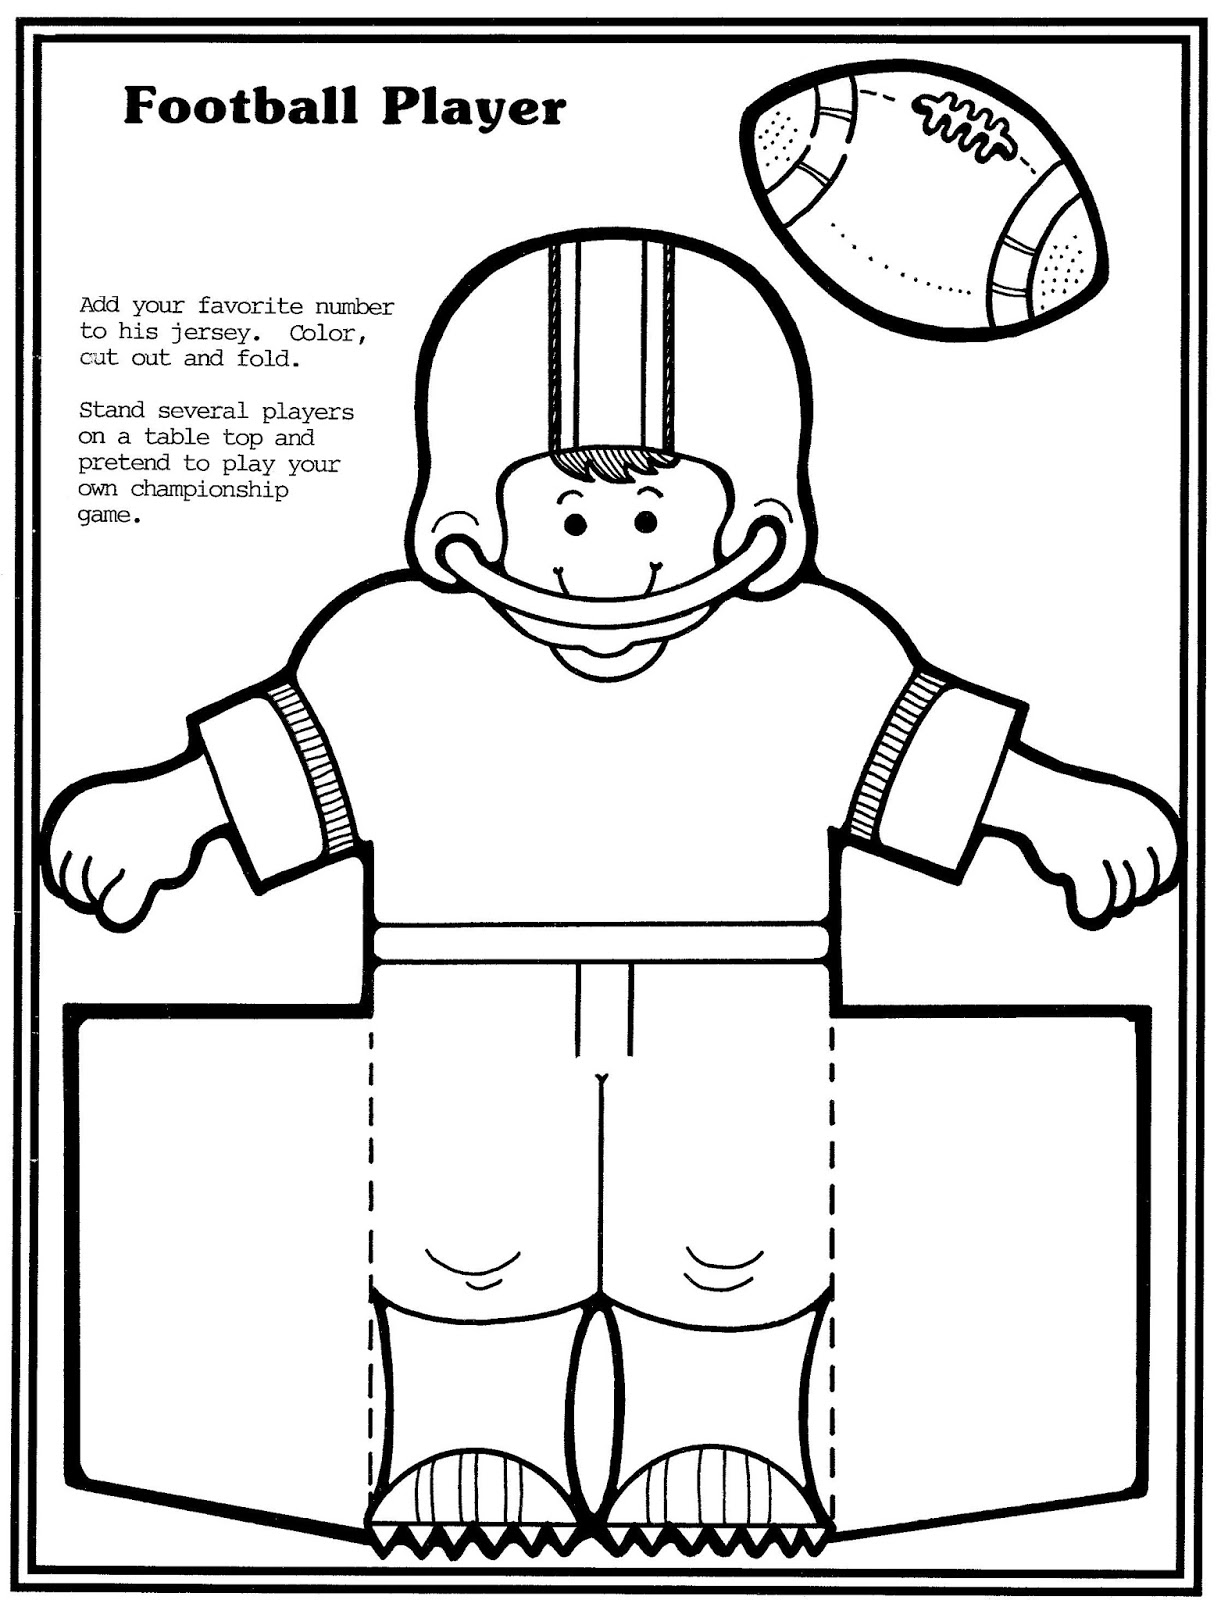 mostly paper dolls too football player and cheerleader cut outs